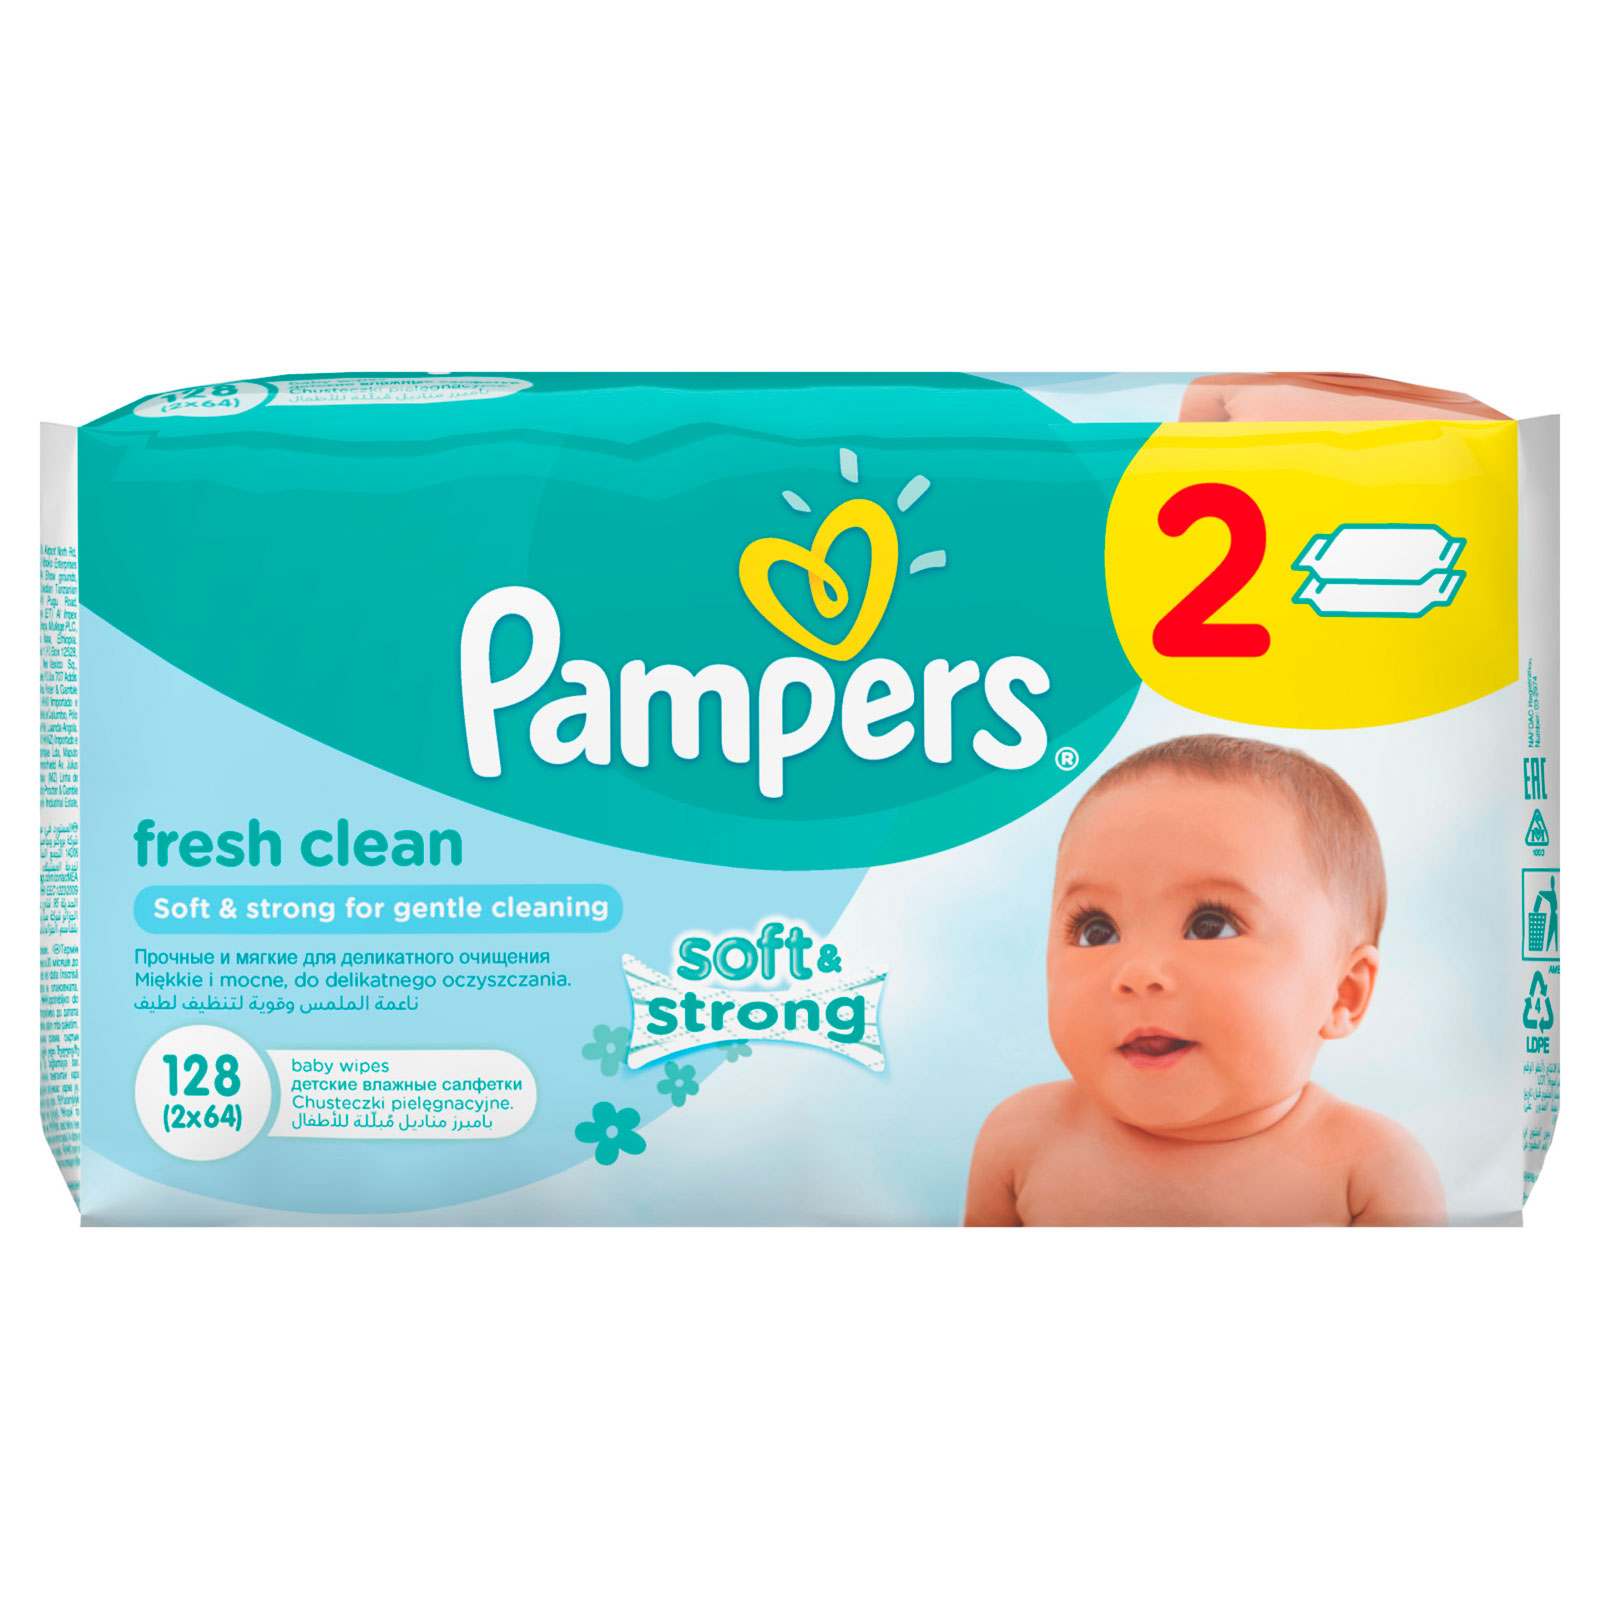 Салфетки влажные Pampers Baby Fresh Clean с алоэ (запасной блок 64 шт х 2) 128 шт от Младенец.ru